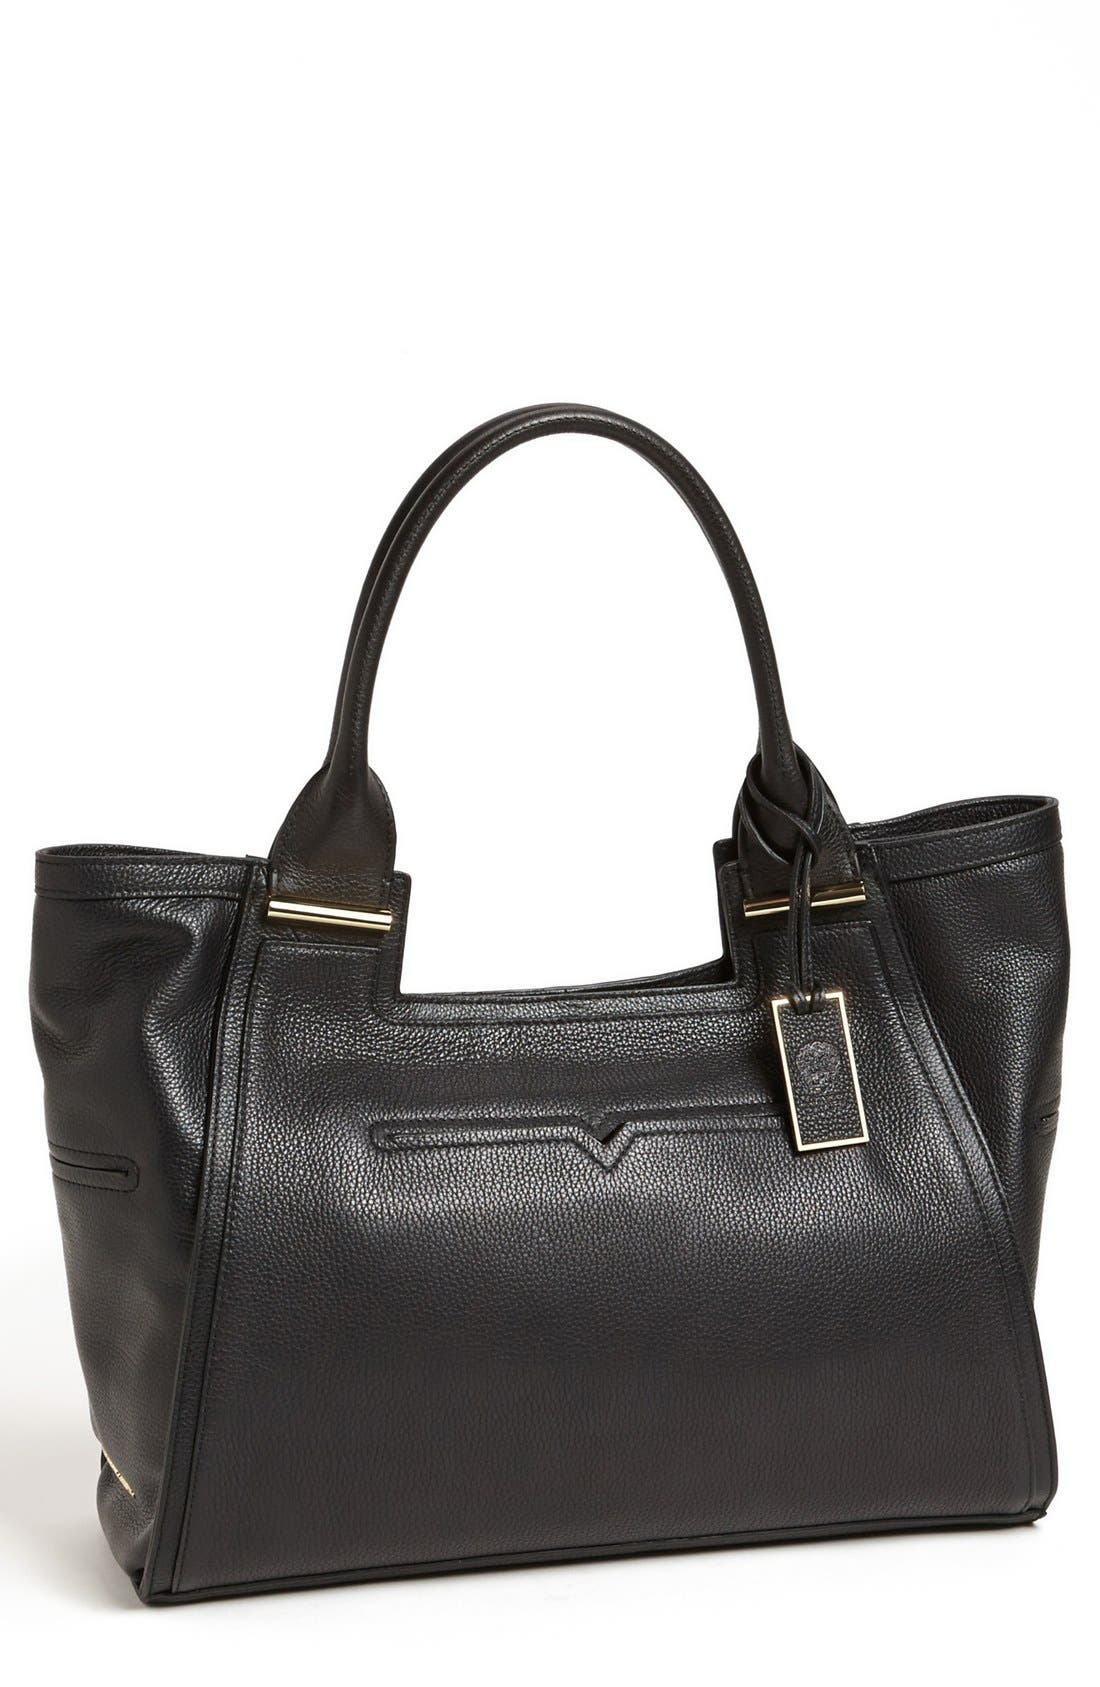 Alternate Image 1 Selected - Vince Camuto 'Billy' Tote